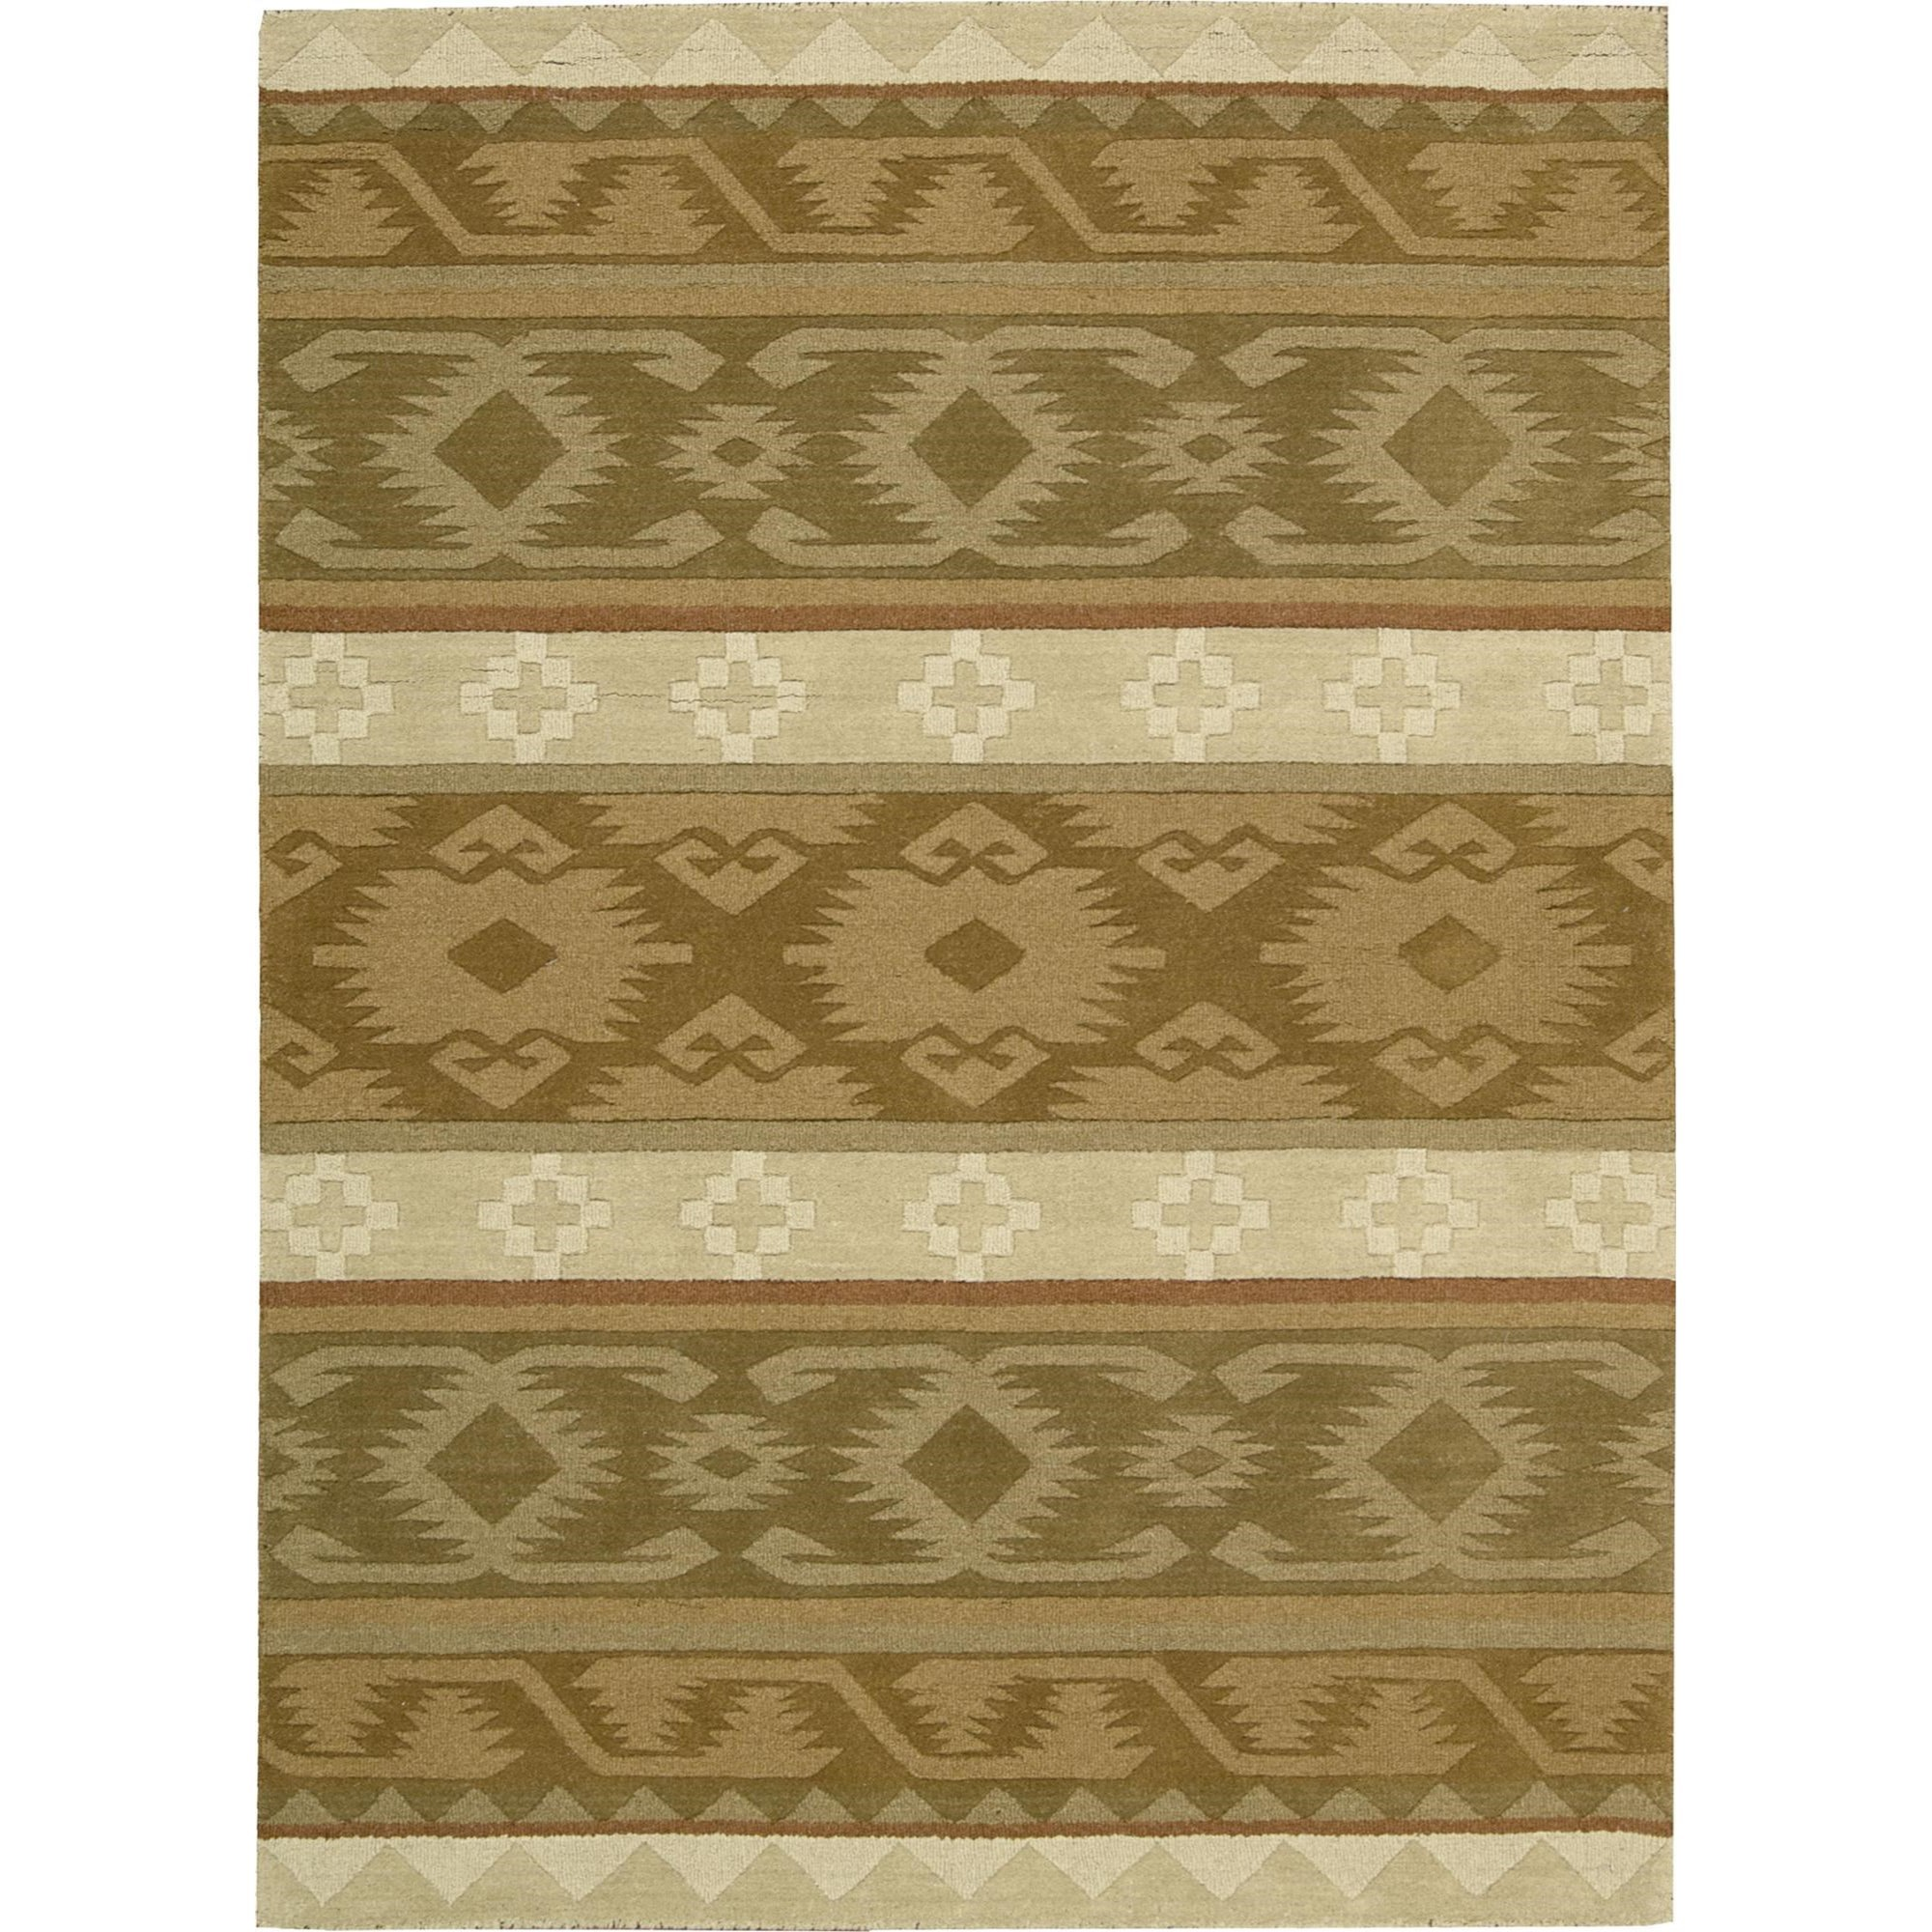 "Nourison India House 3'6"" x 5'6"" Camel Area Rug - Item Number: 22021"